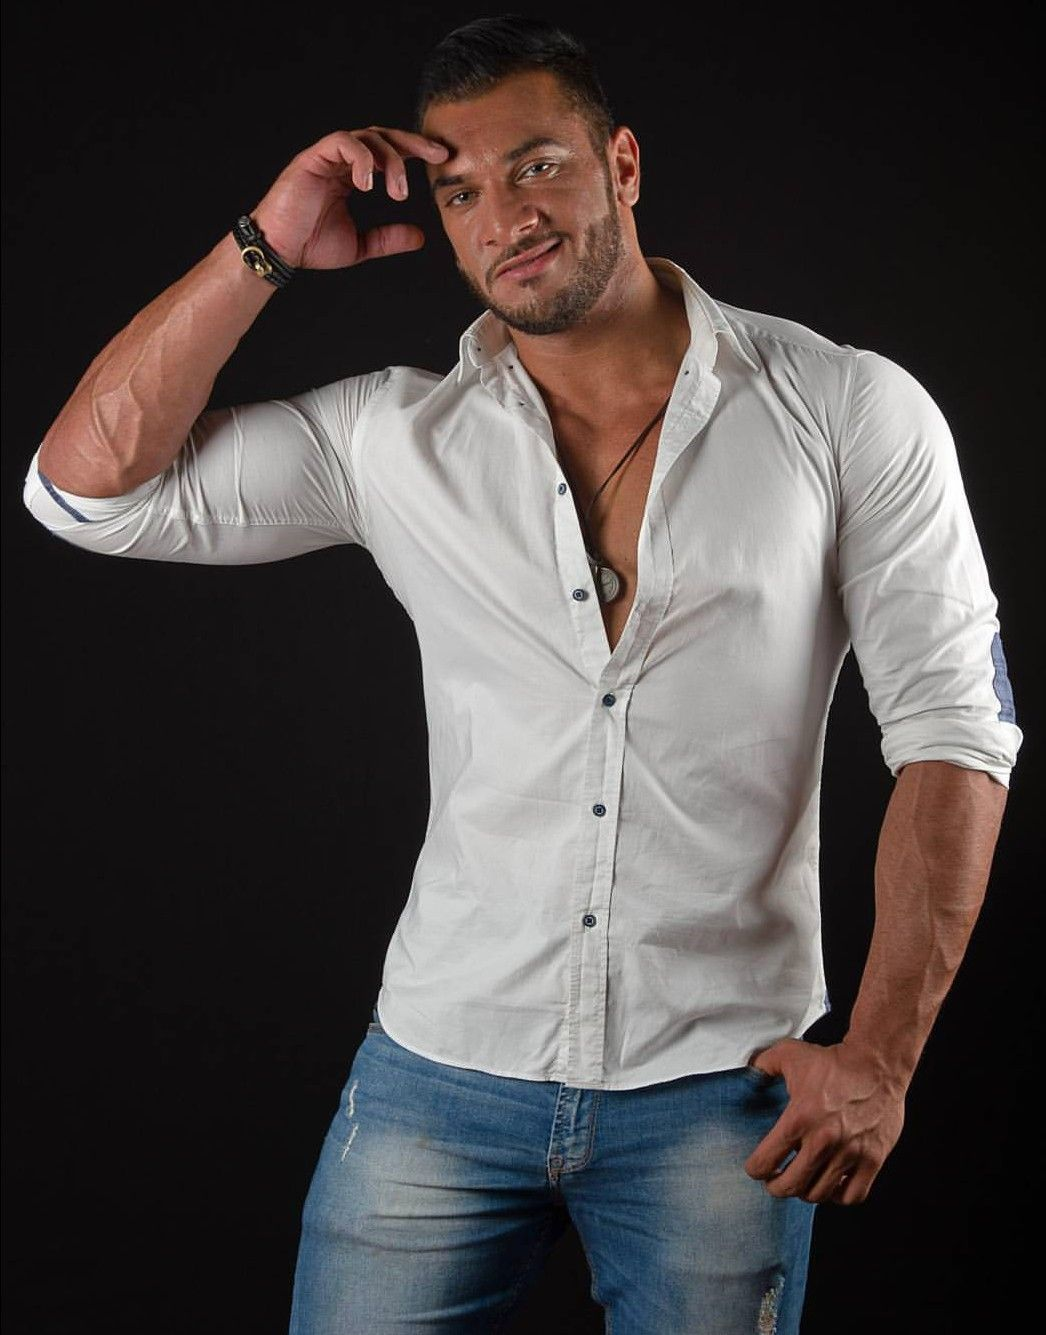 forearms   rolled up shirtsleeves   pinterest   handsome, mature men